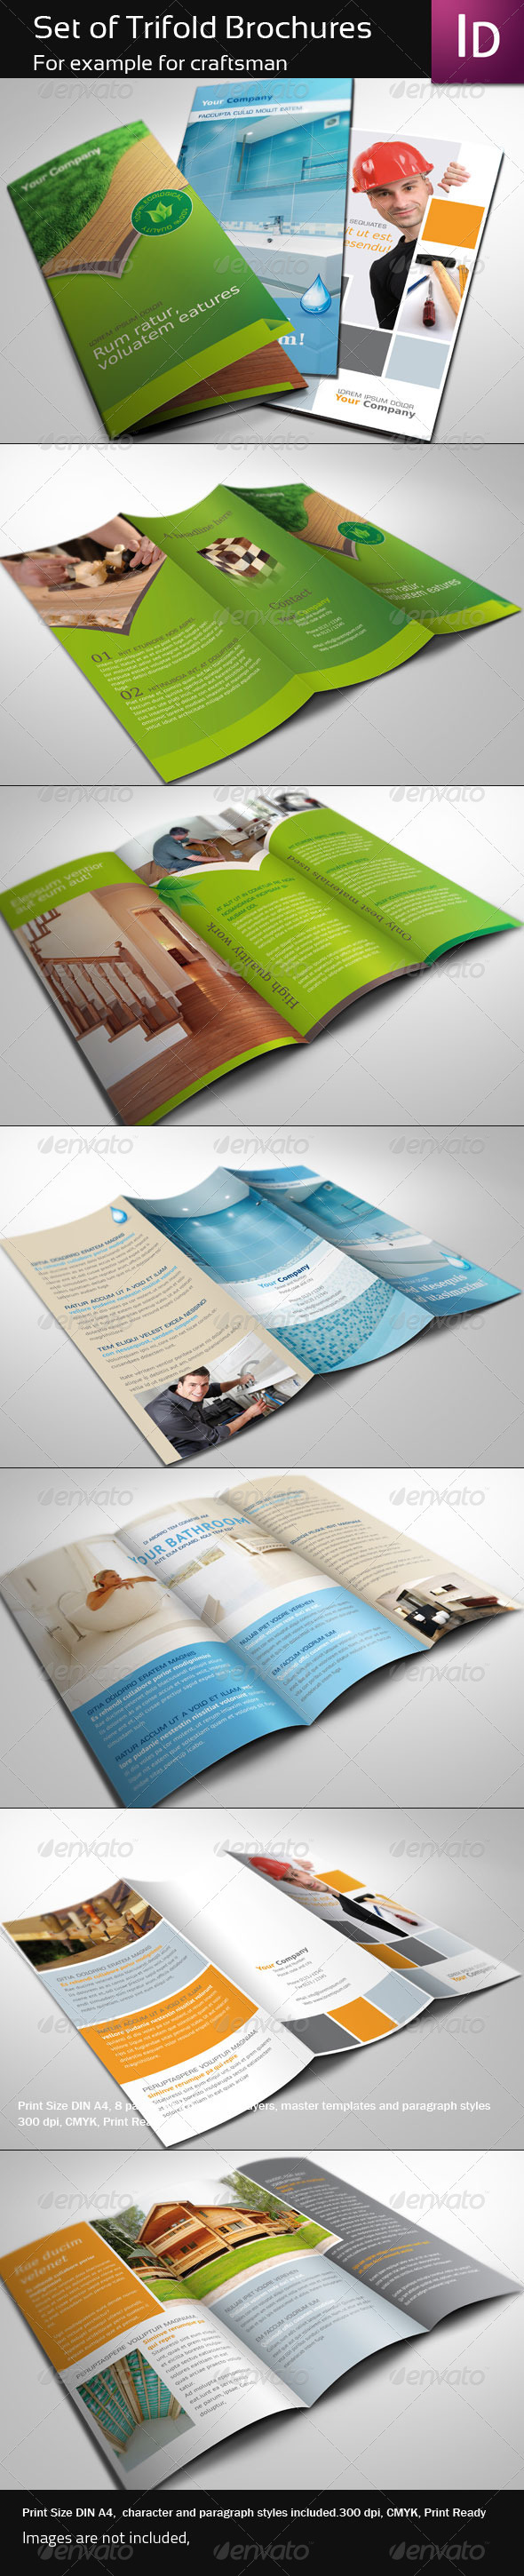 Set of Trifold Brochure - Corporate Brochures